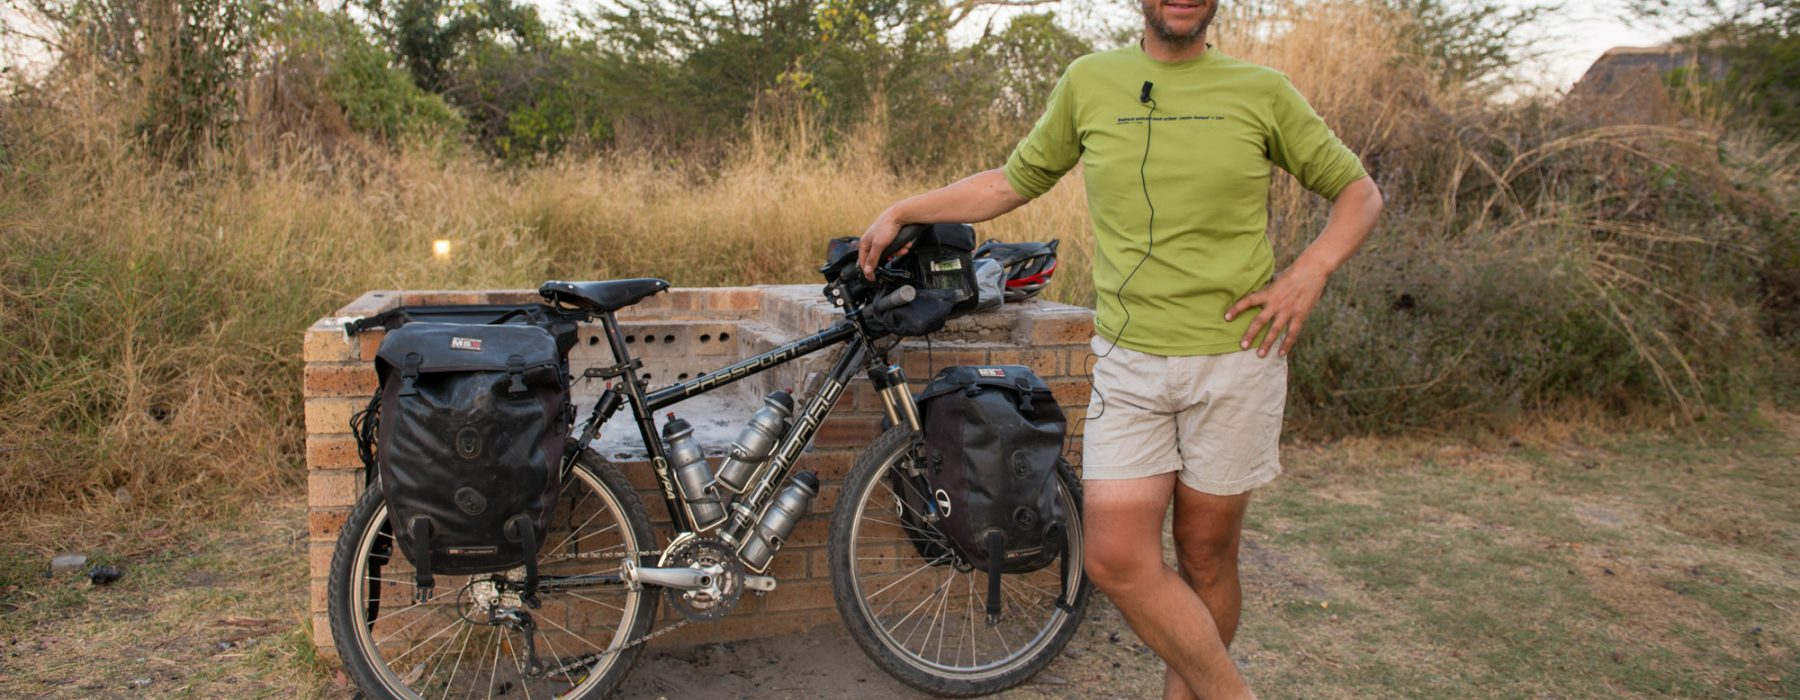 Cycling through Africa: bikepacking essentials for adventure cycling